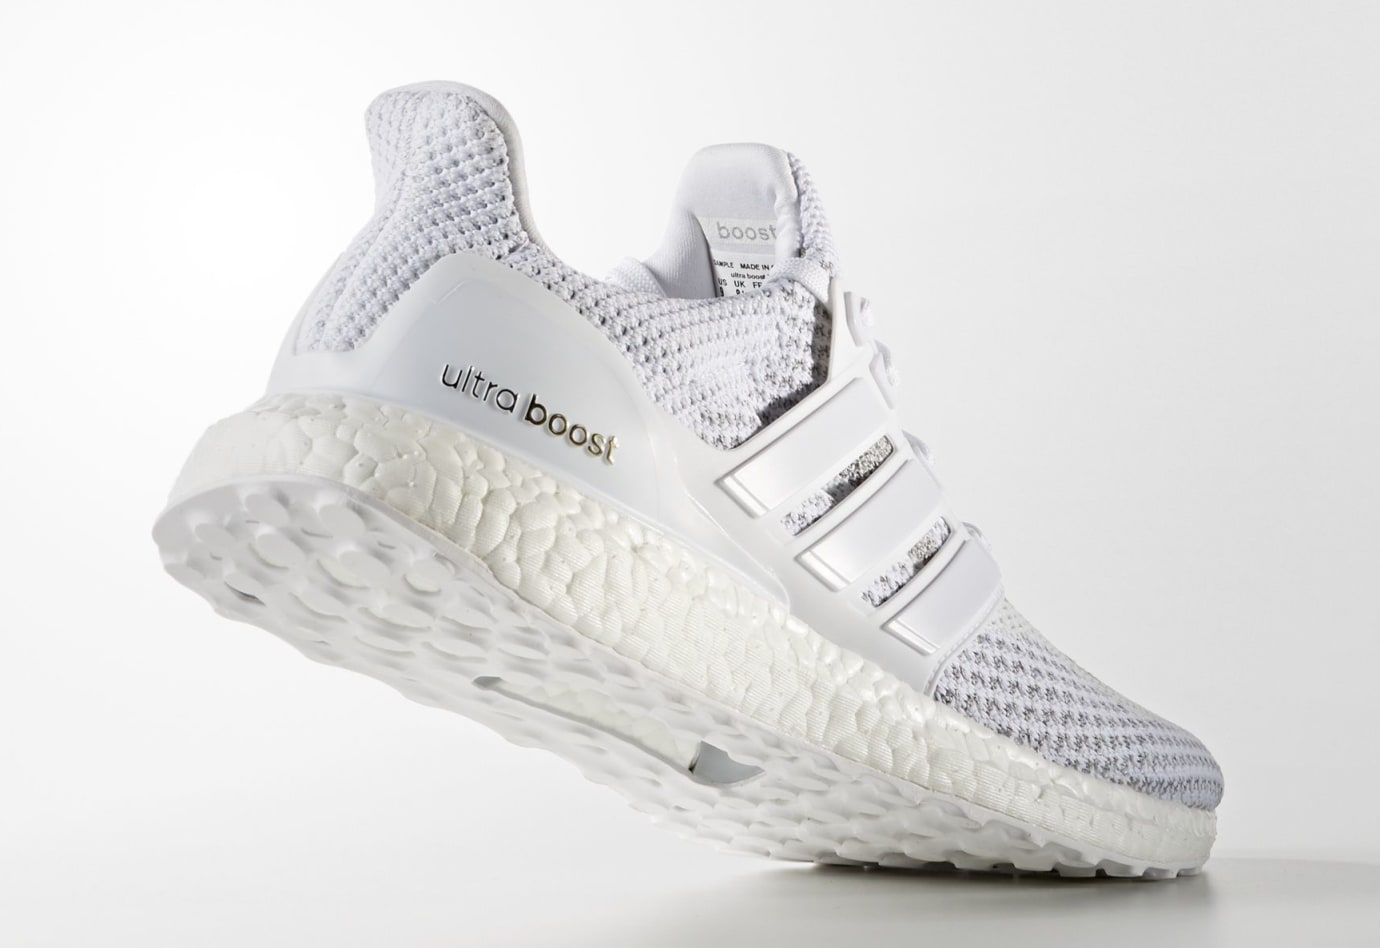 Adidas Ultra Boost 2.0 White Reflective 2018 Release Date BB3928 Lateral